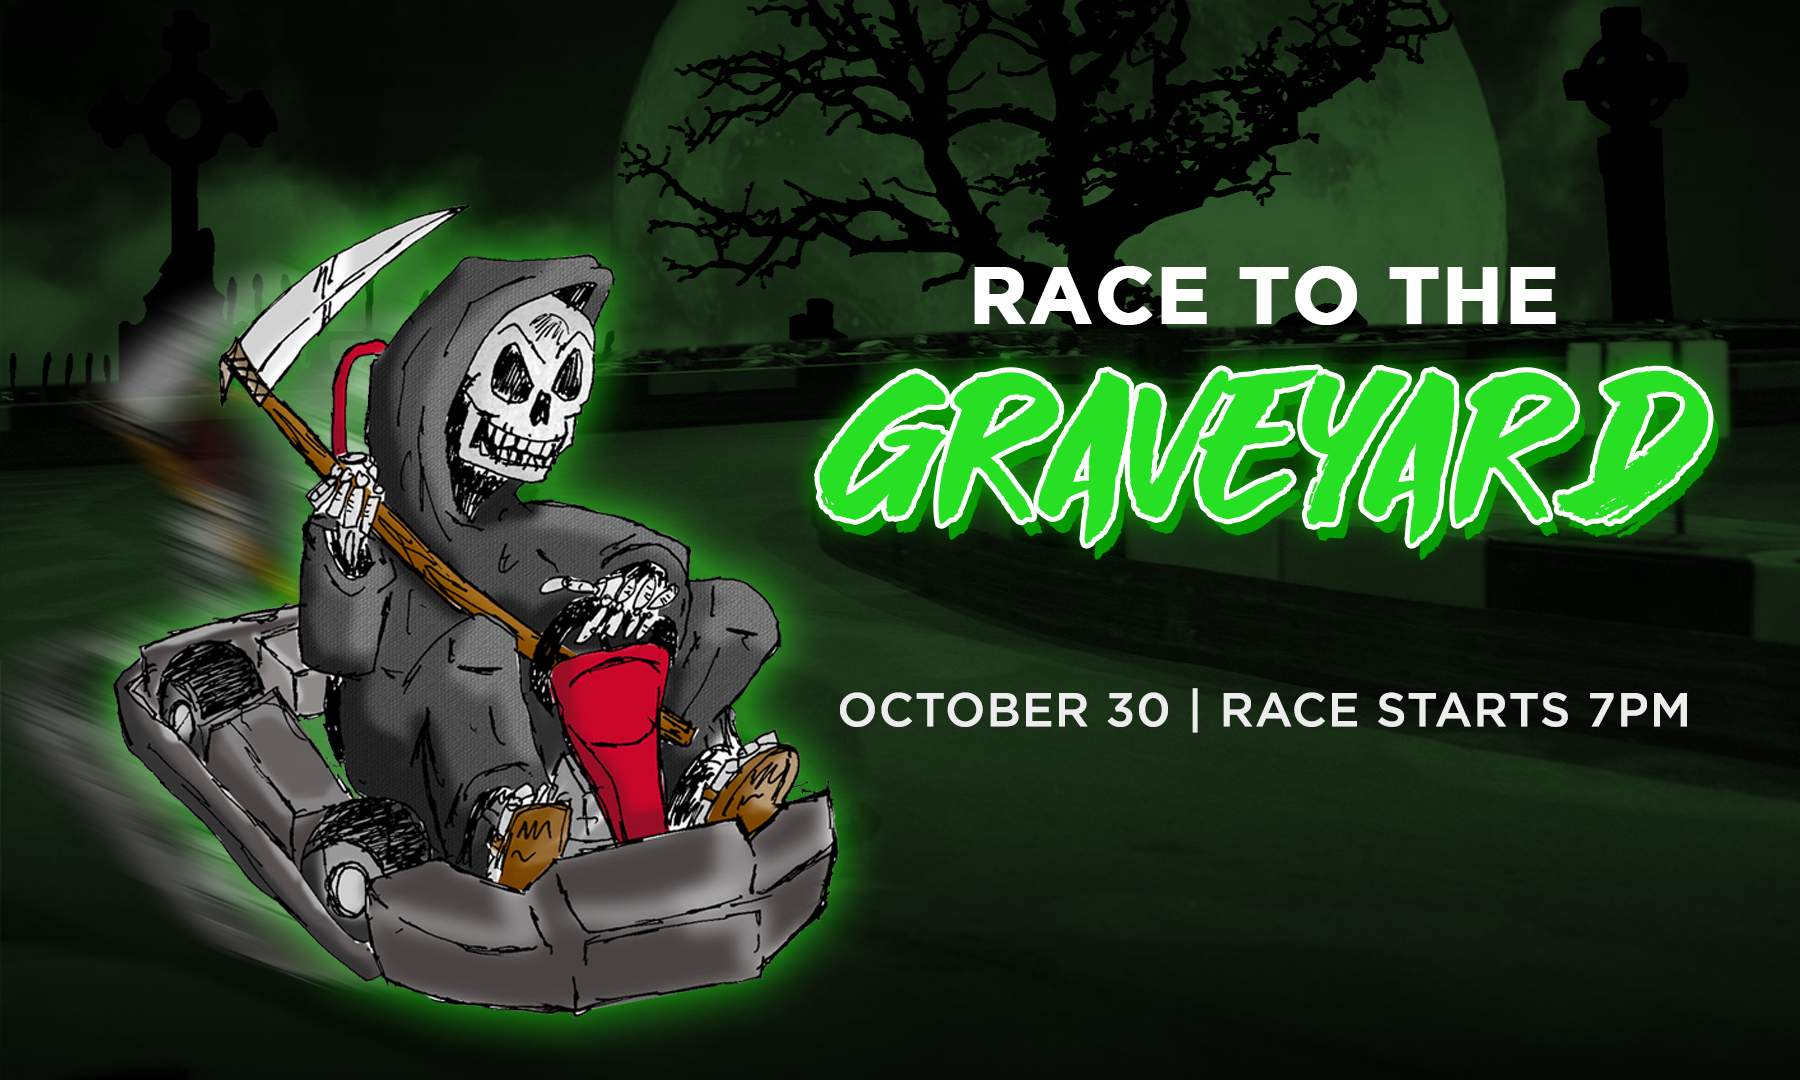 Race to the Graveyard Halloween Race